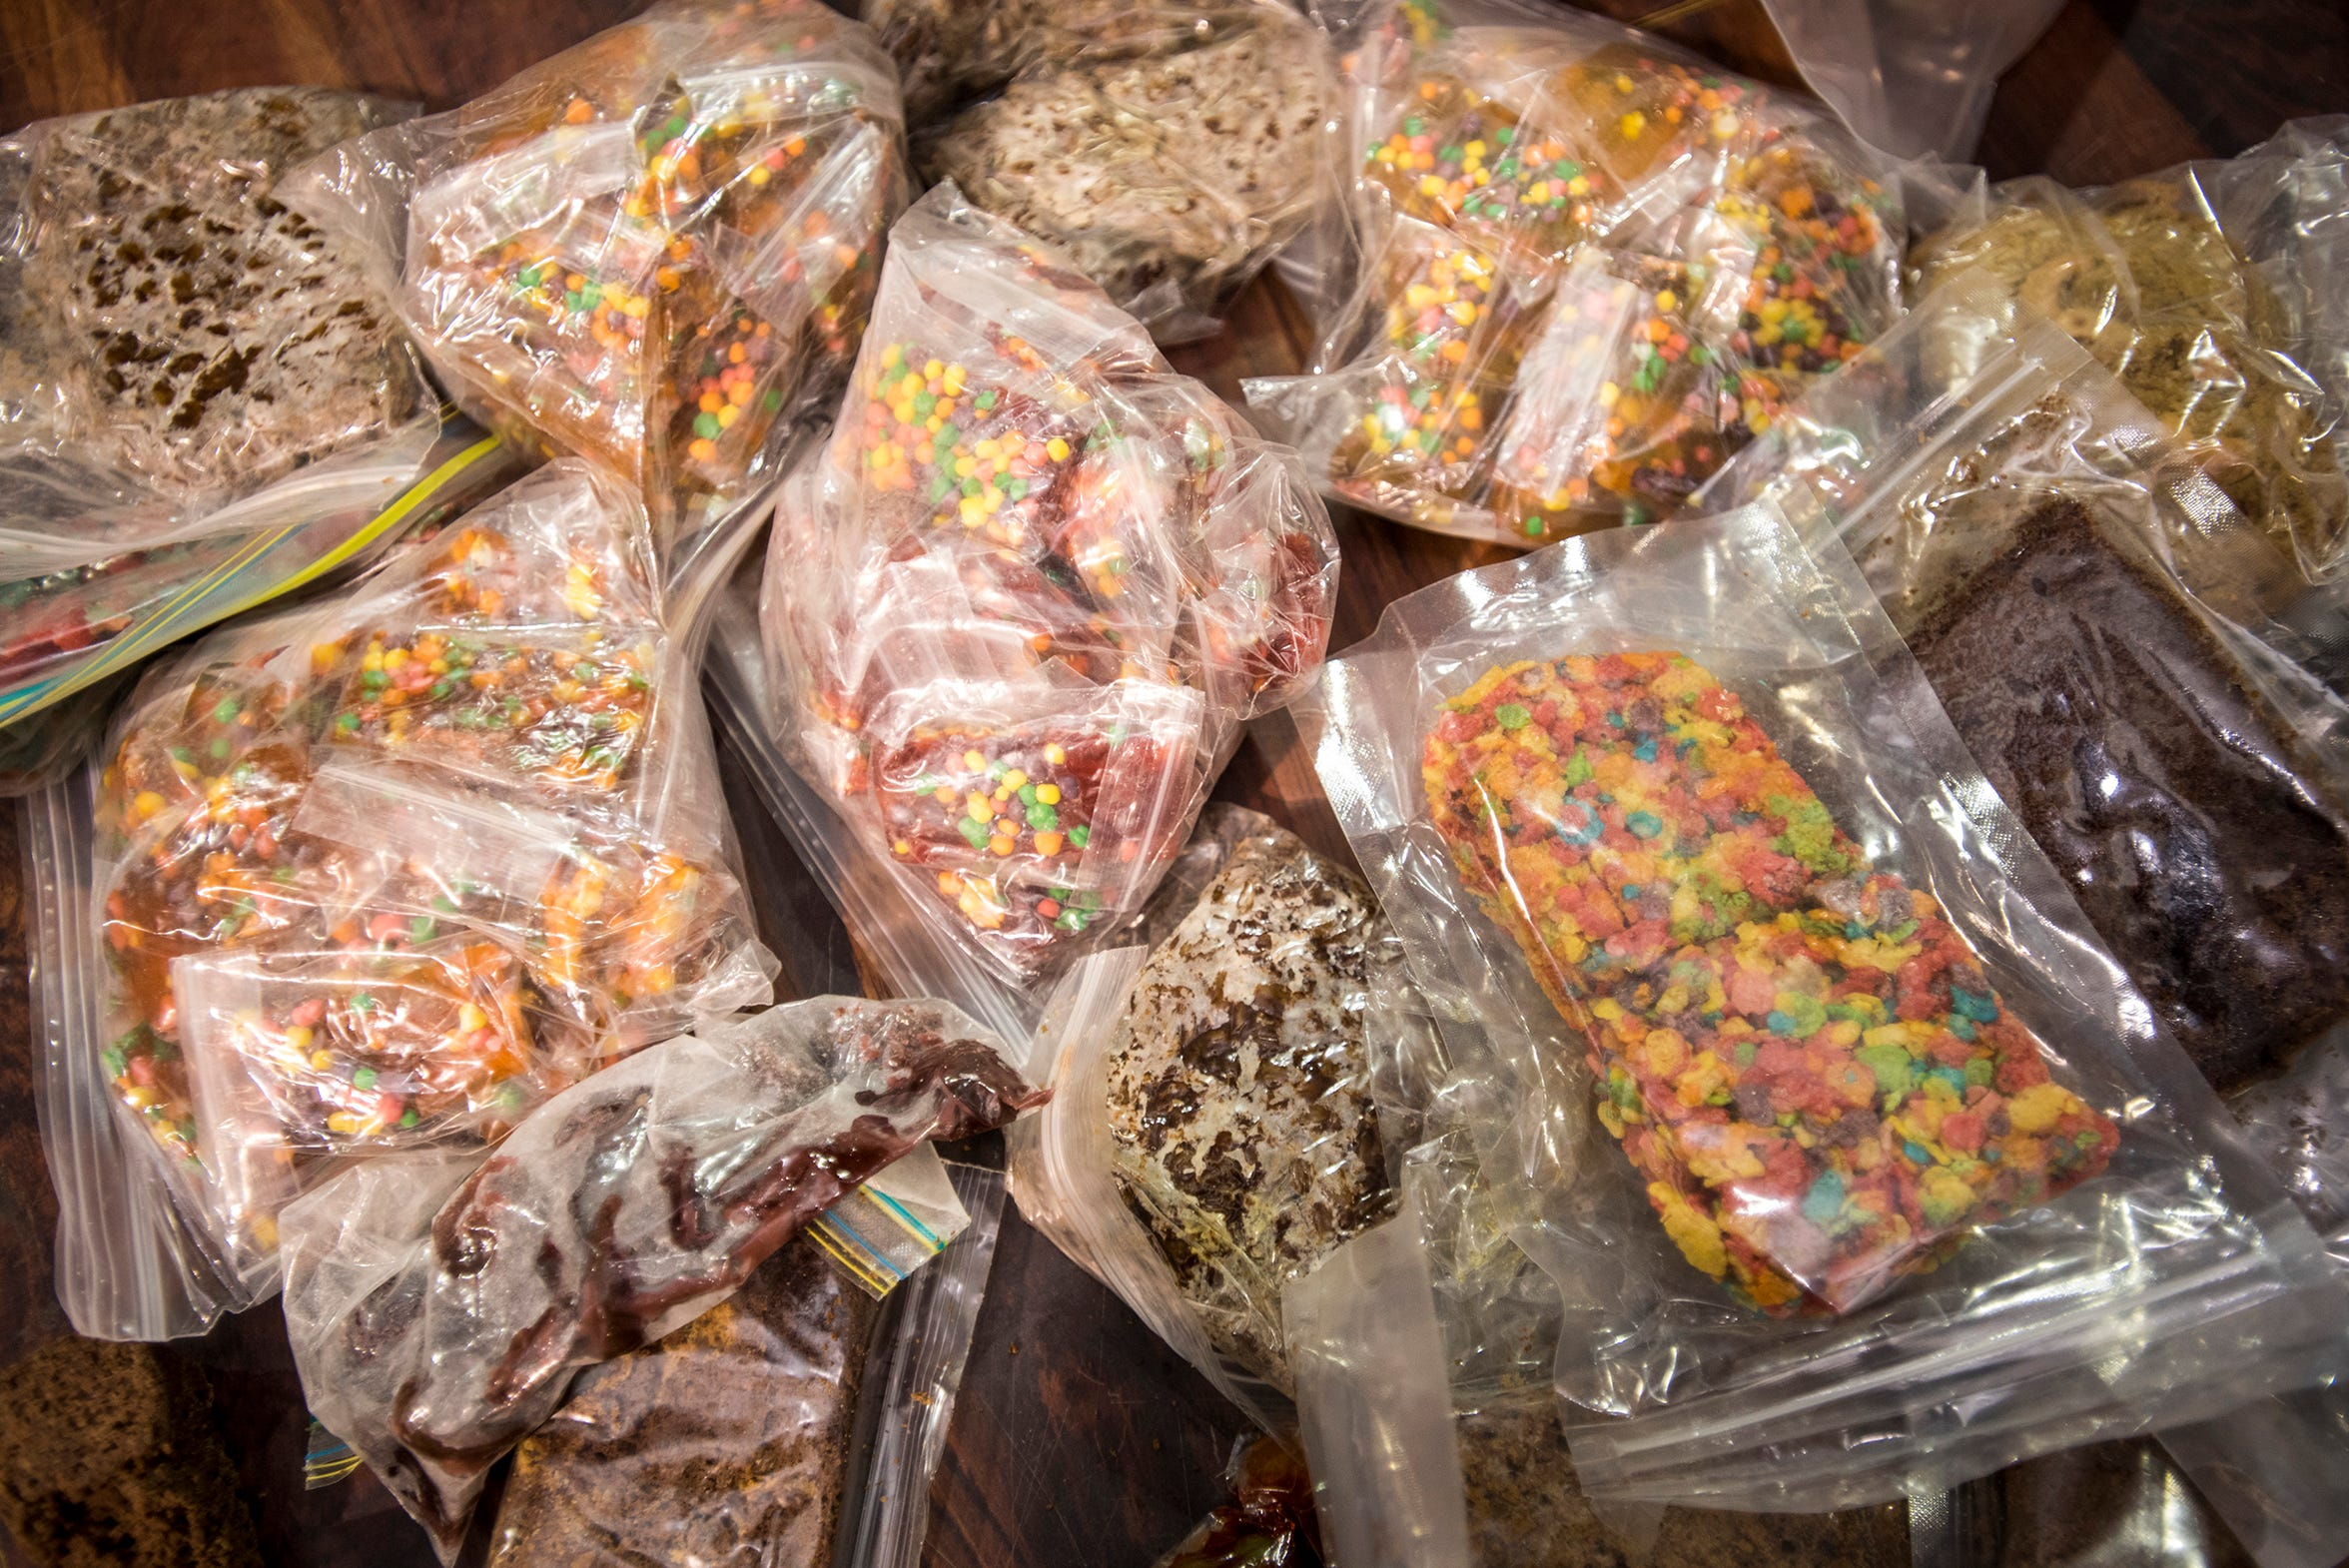 Edibles containing marijuana are seen in evidence bags at the St. Clair County Sheriff's drug task force.